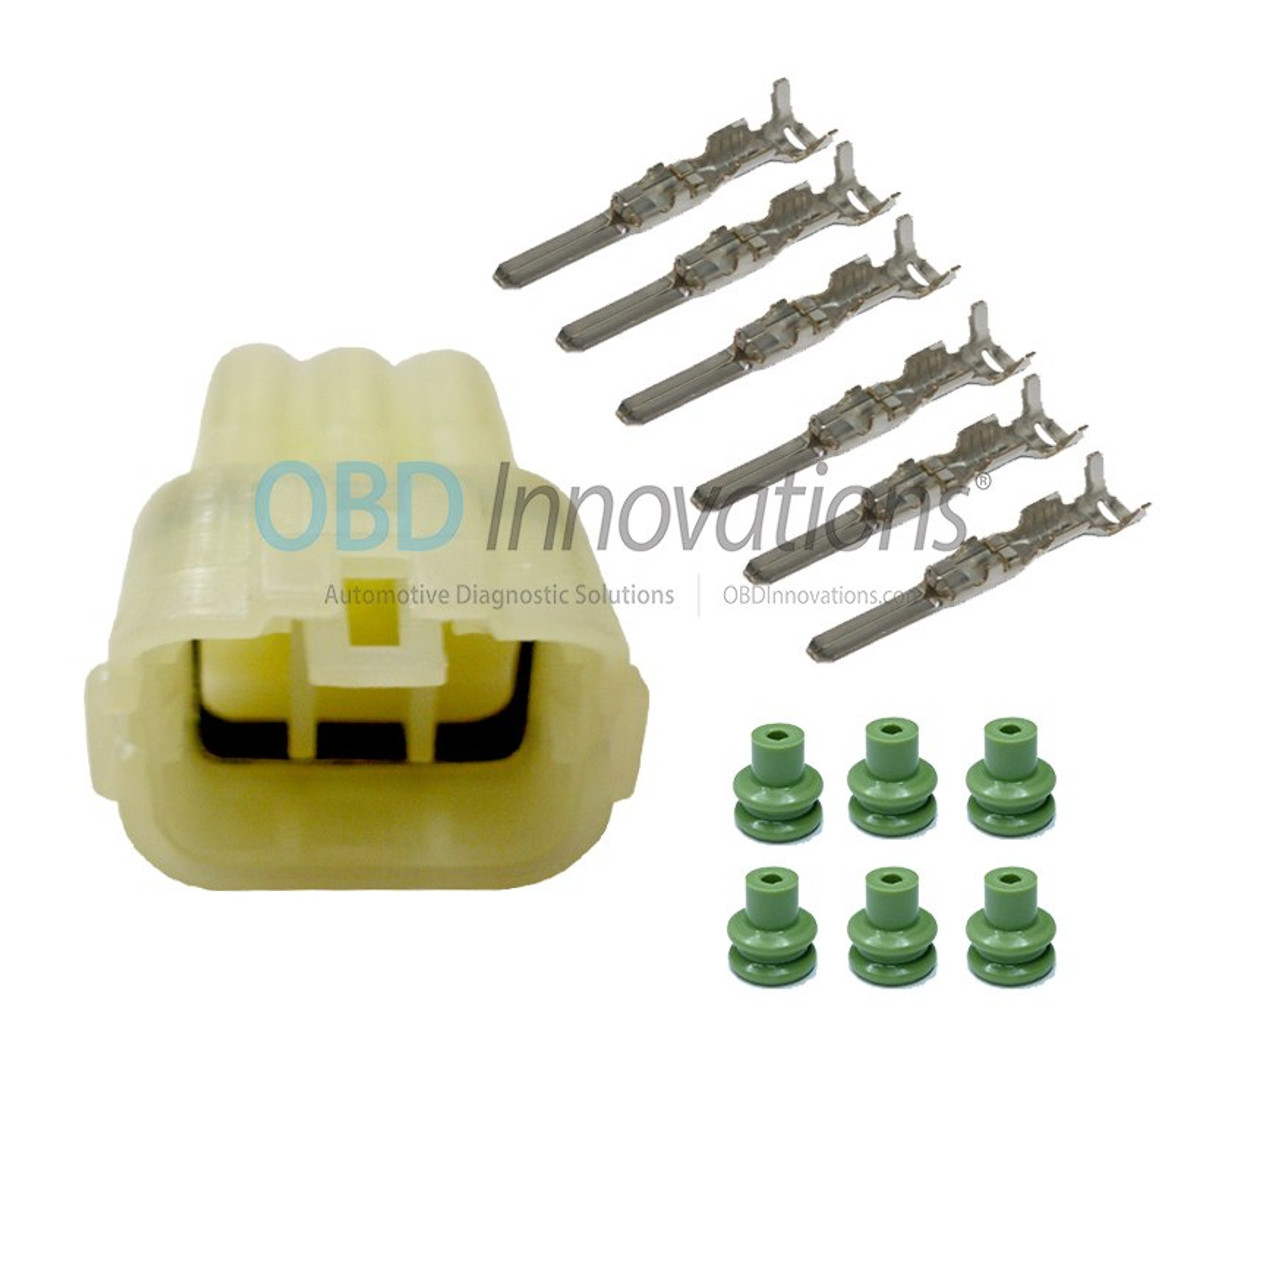 OBD0 Distributor Connector Kit for 88-91 Honda Acura CRX D15 D16 1.5L on